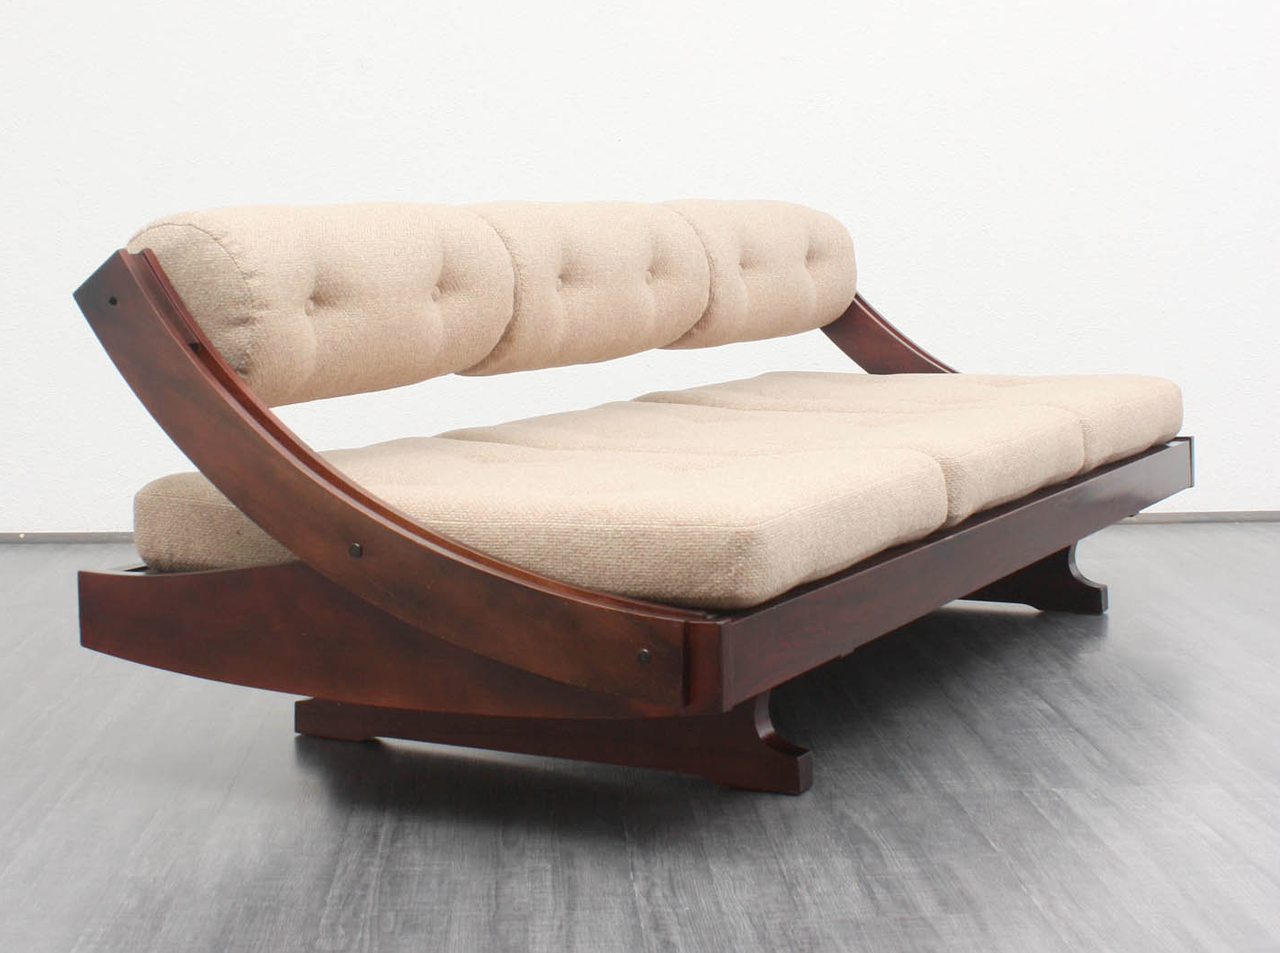 1960s Daybed Gs 195 Design Gianni Songia For Sormani